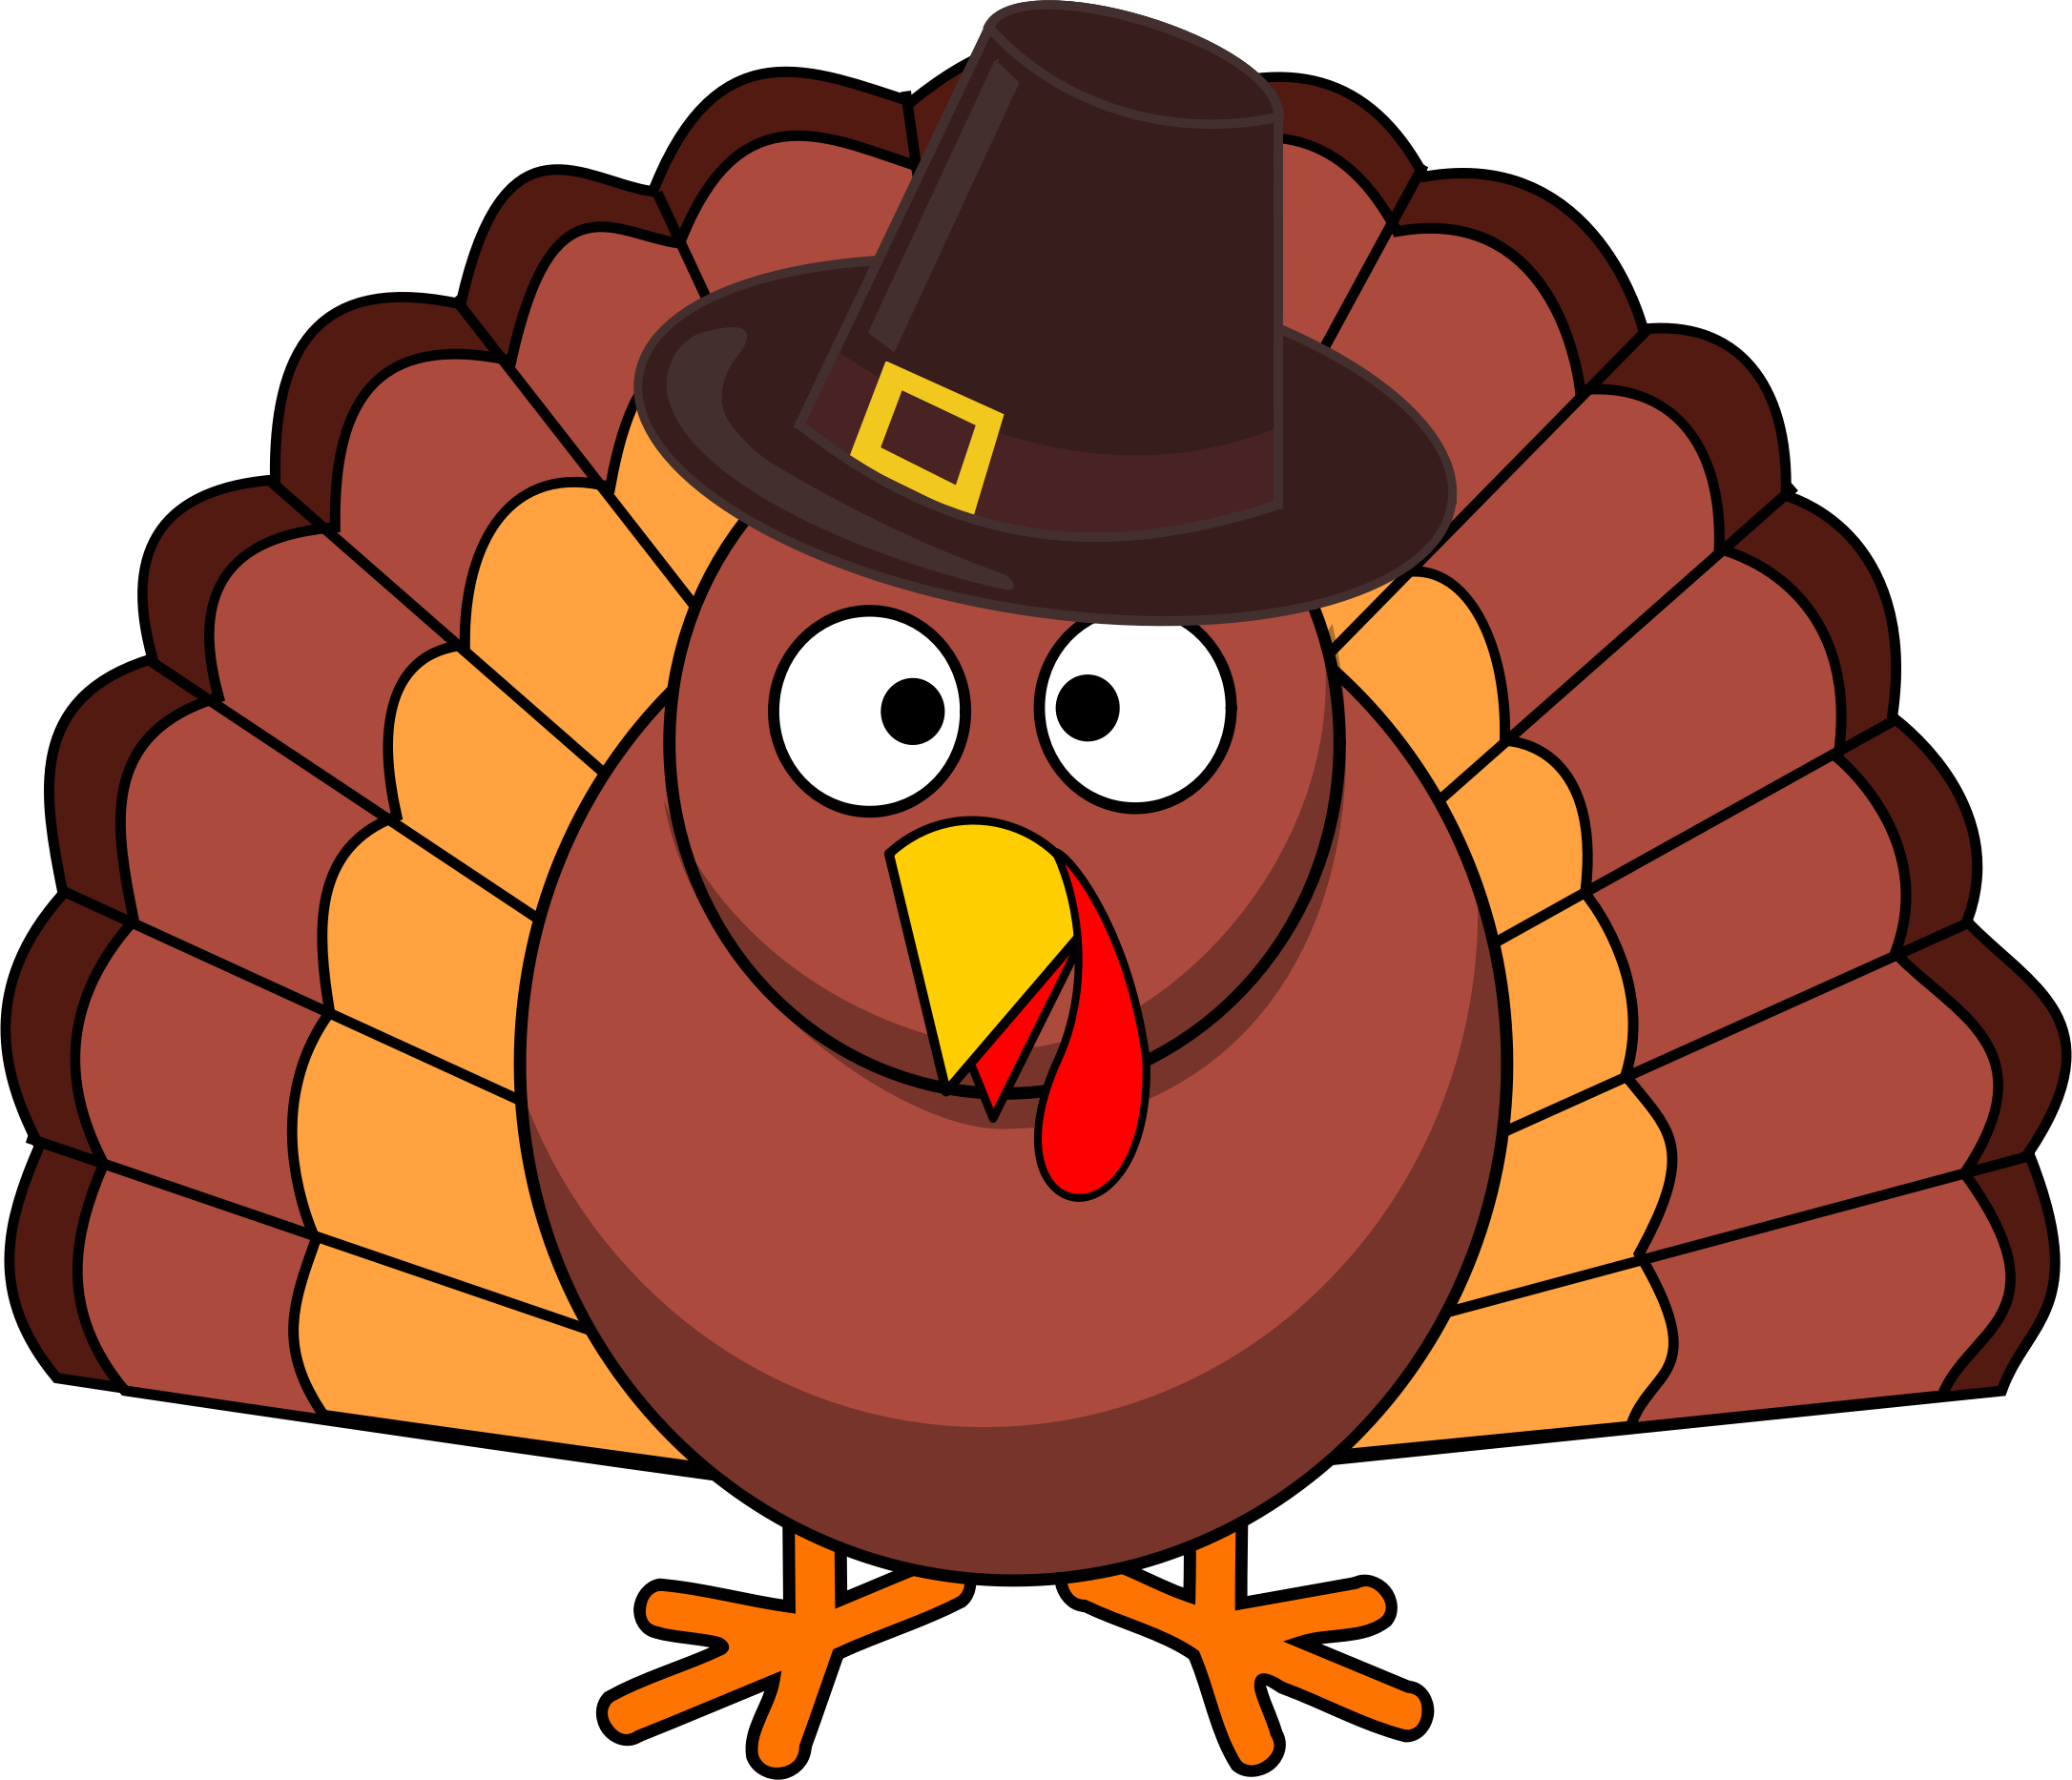 Clipart turkey shoe. Silhouette at getdrawings com